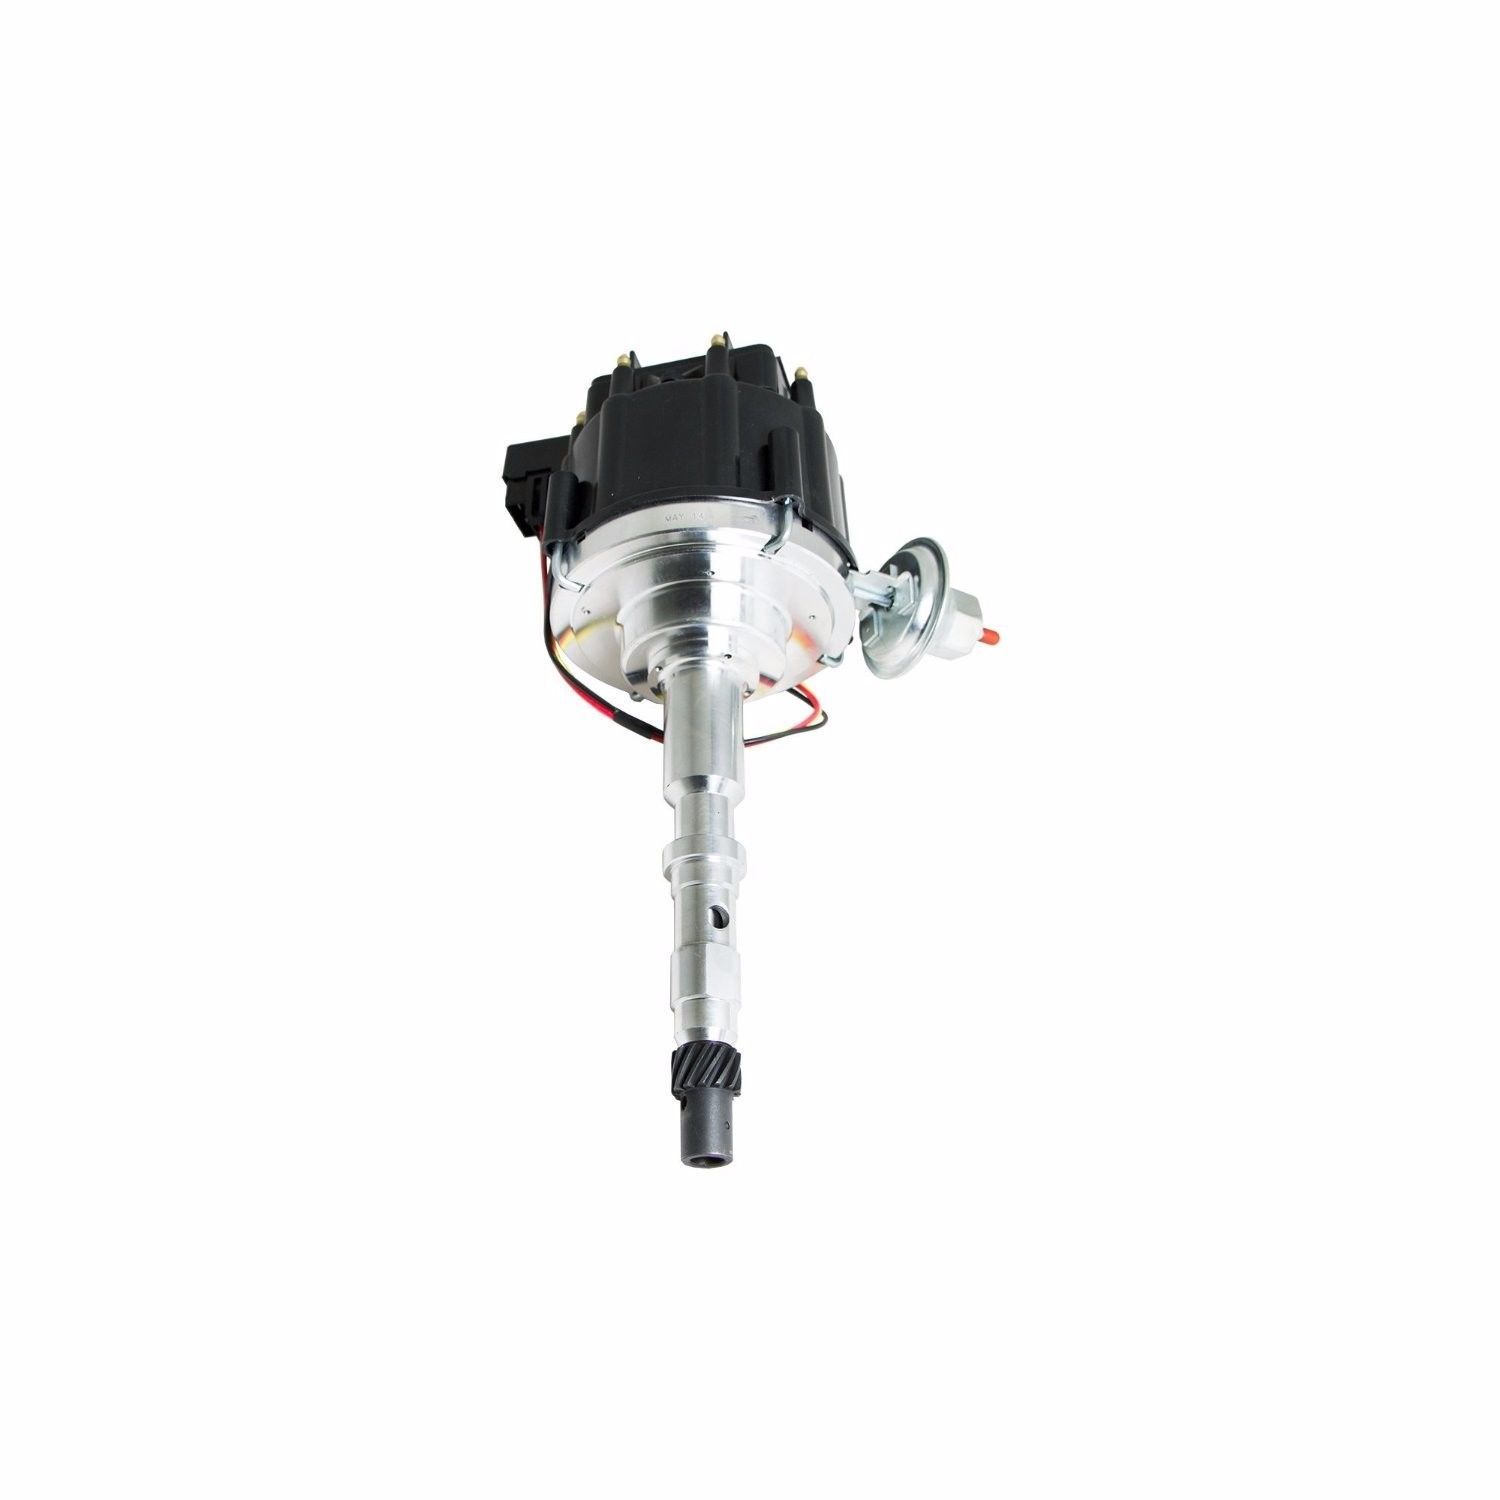 AMC JEEP CJ5 CJ7 304 360 401 V-8 HEI DISTRIBUTOR BLACK 65K